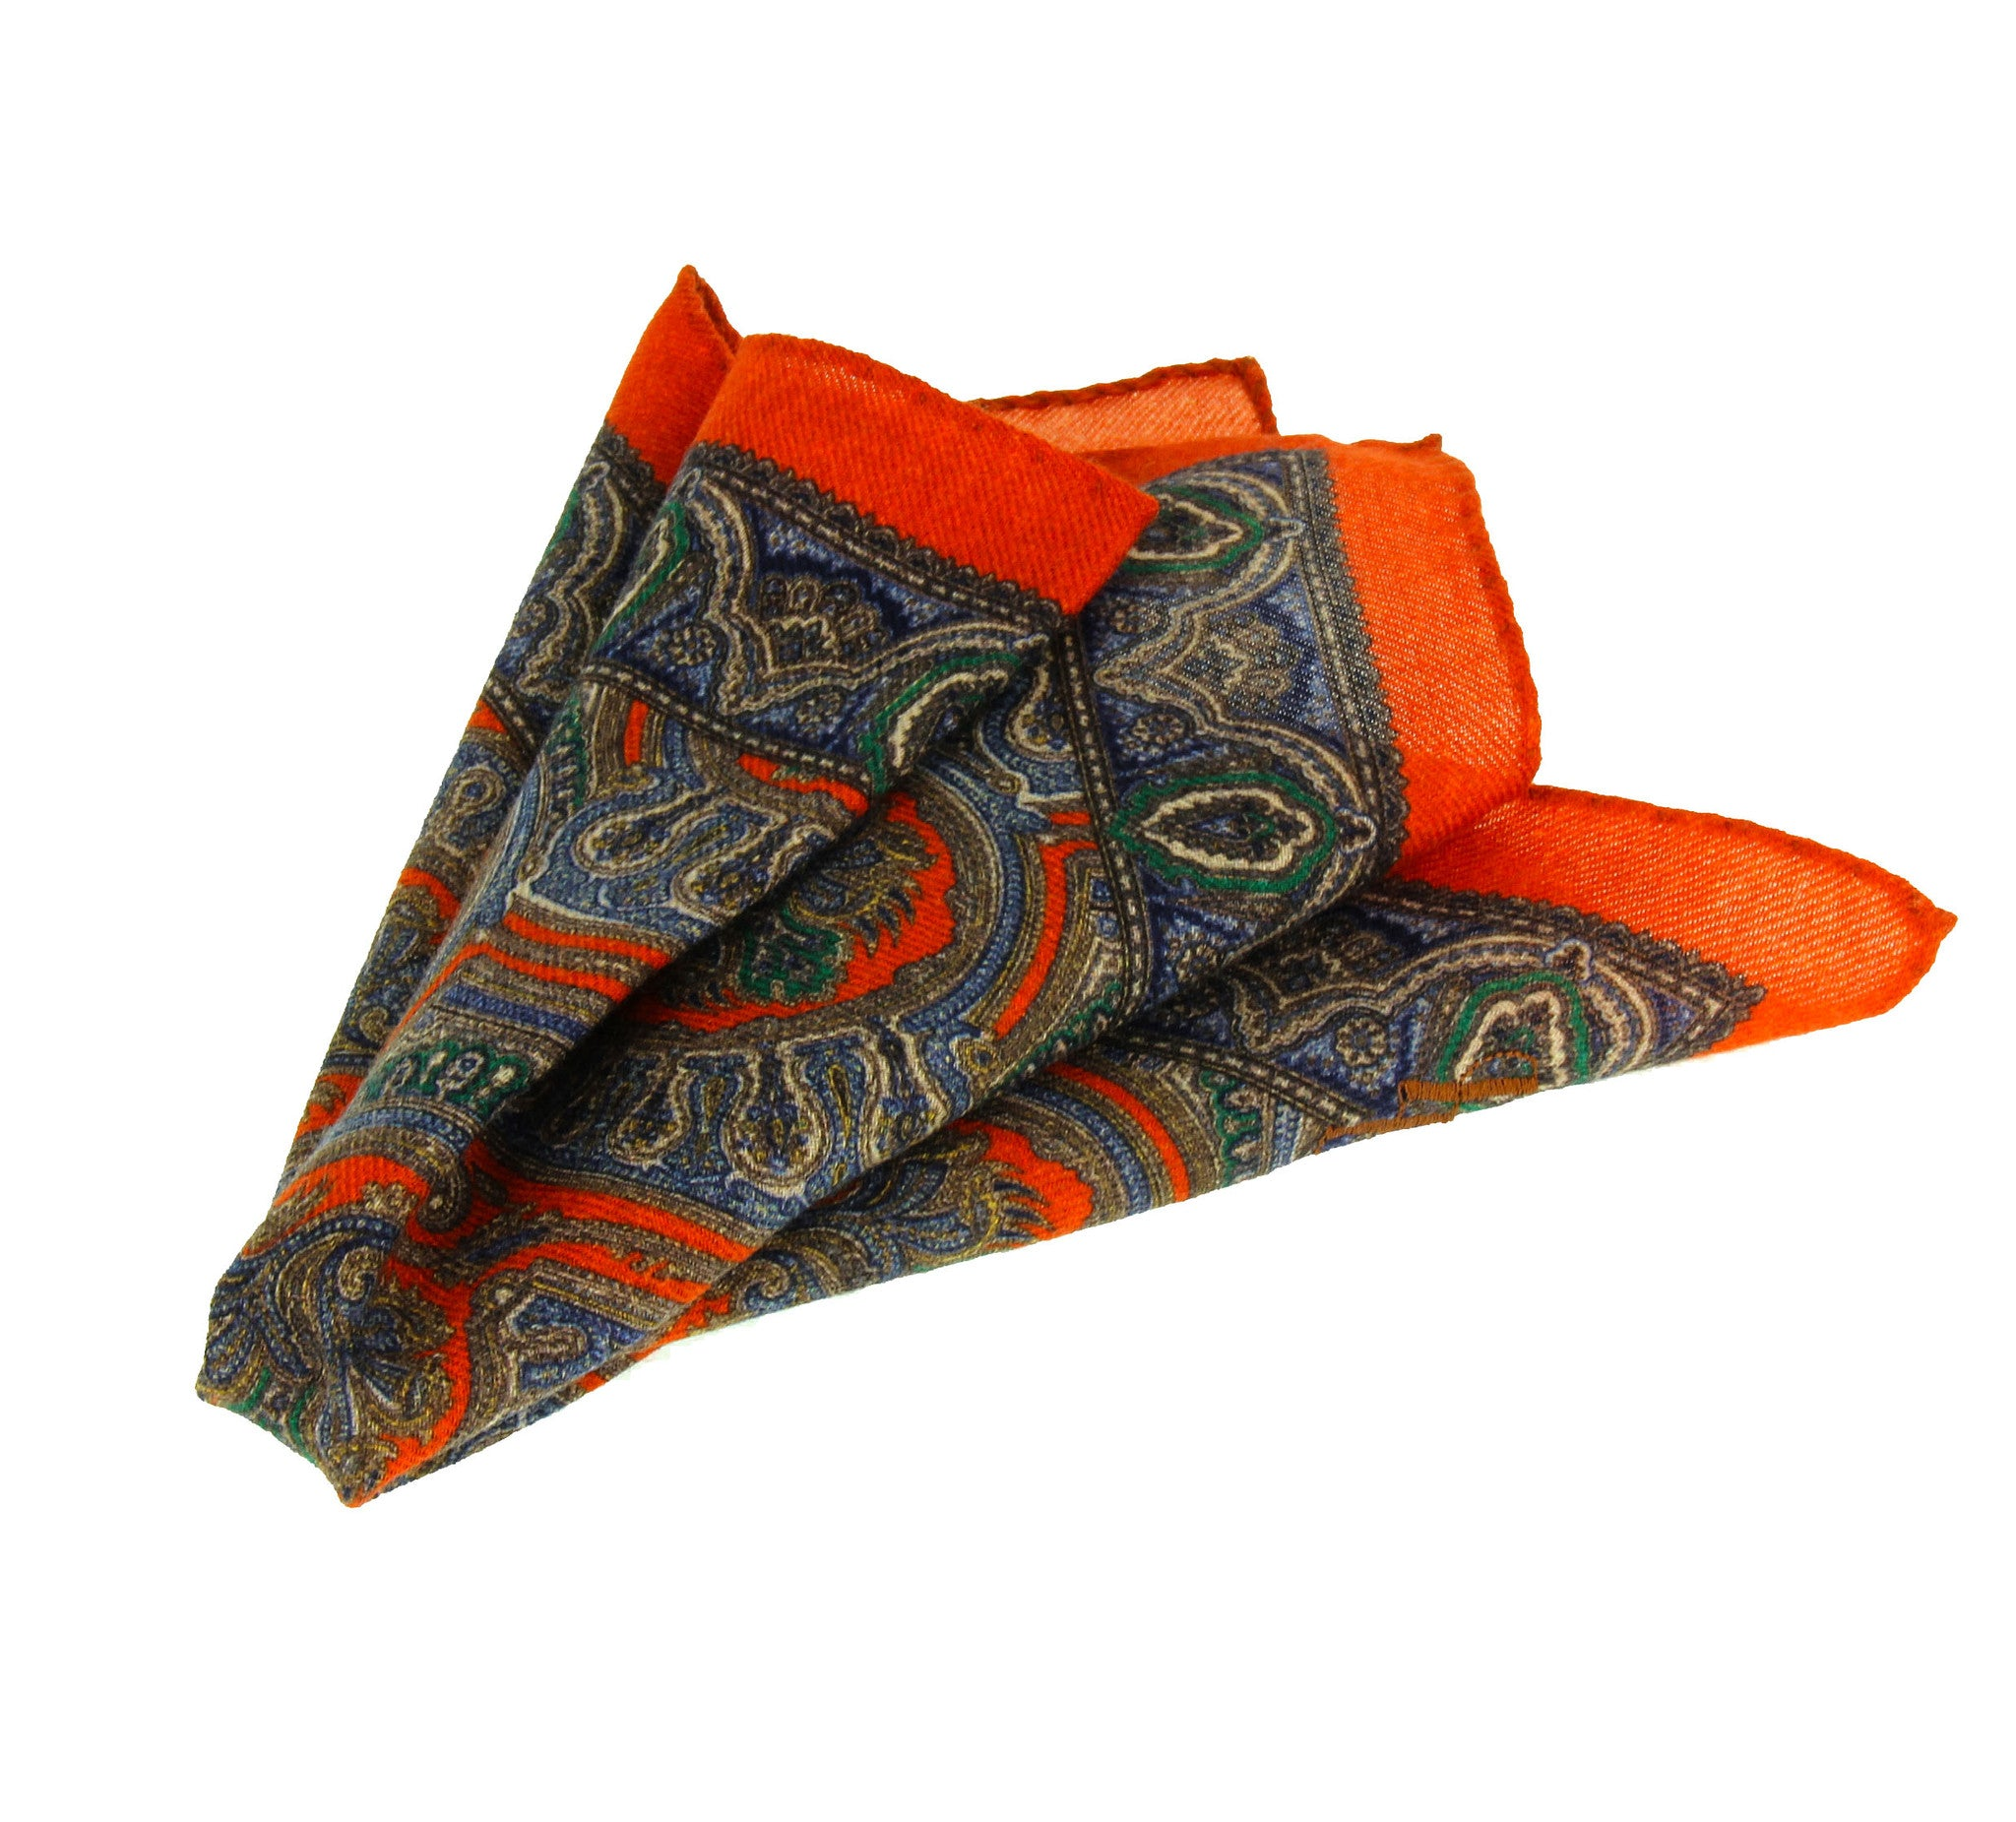 Red pocket square with multiple patterns